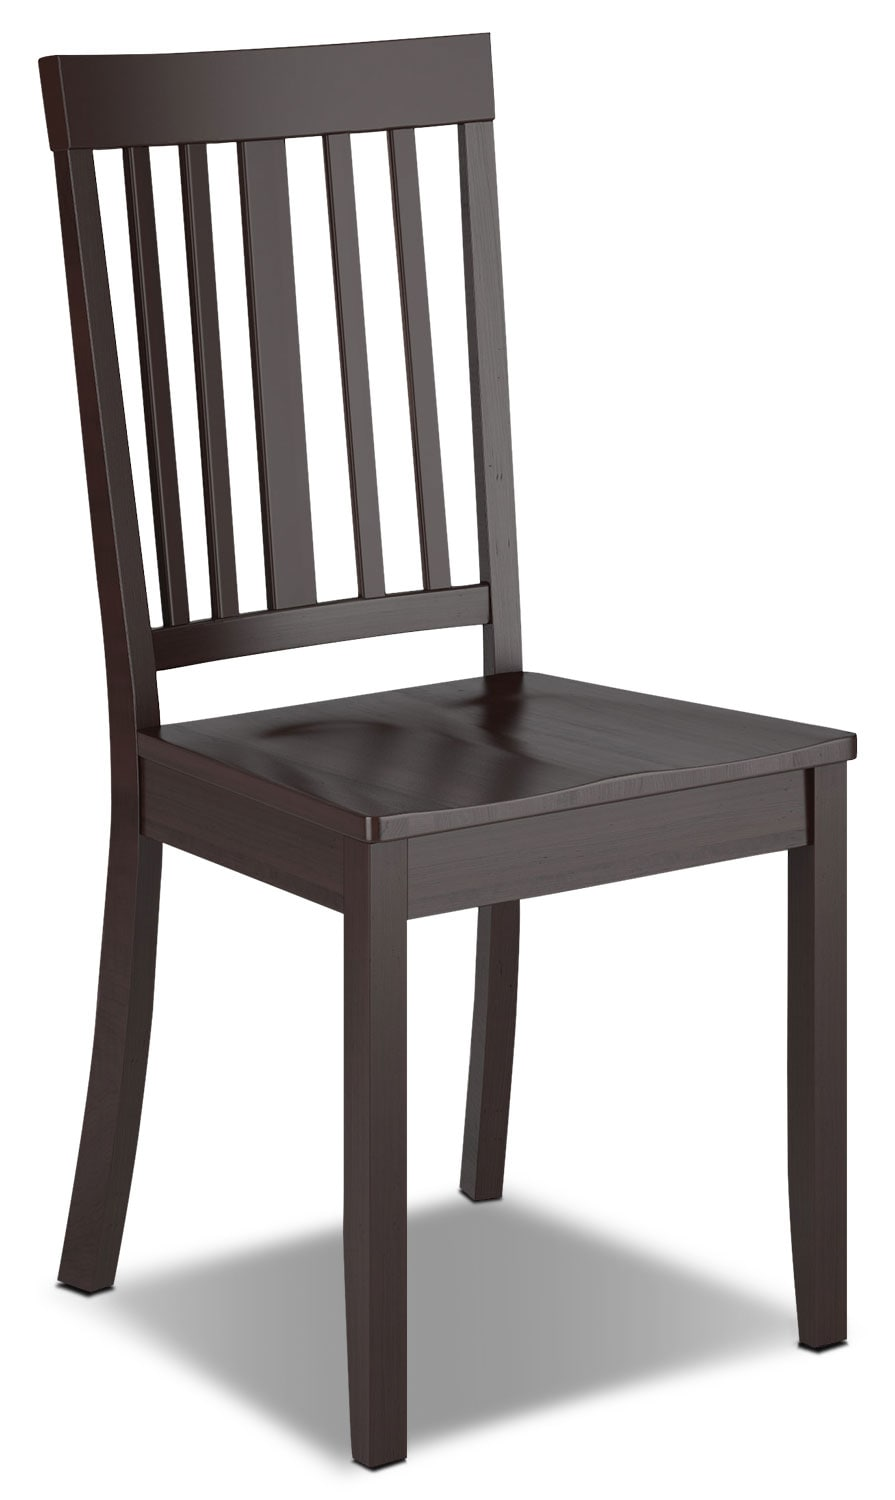 Atwood Dining Chair - Cappuccino